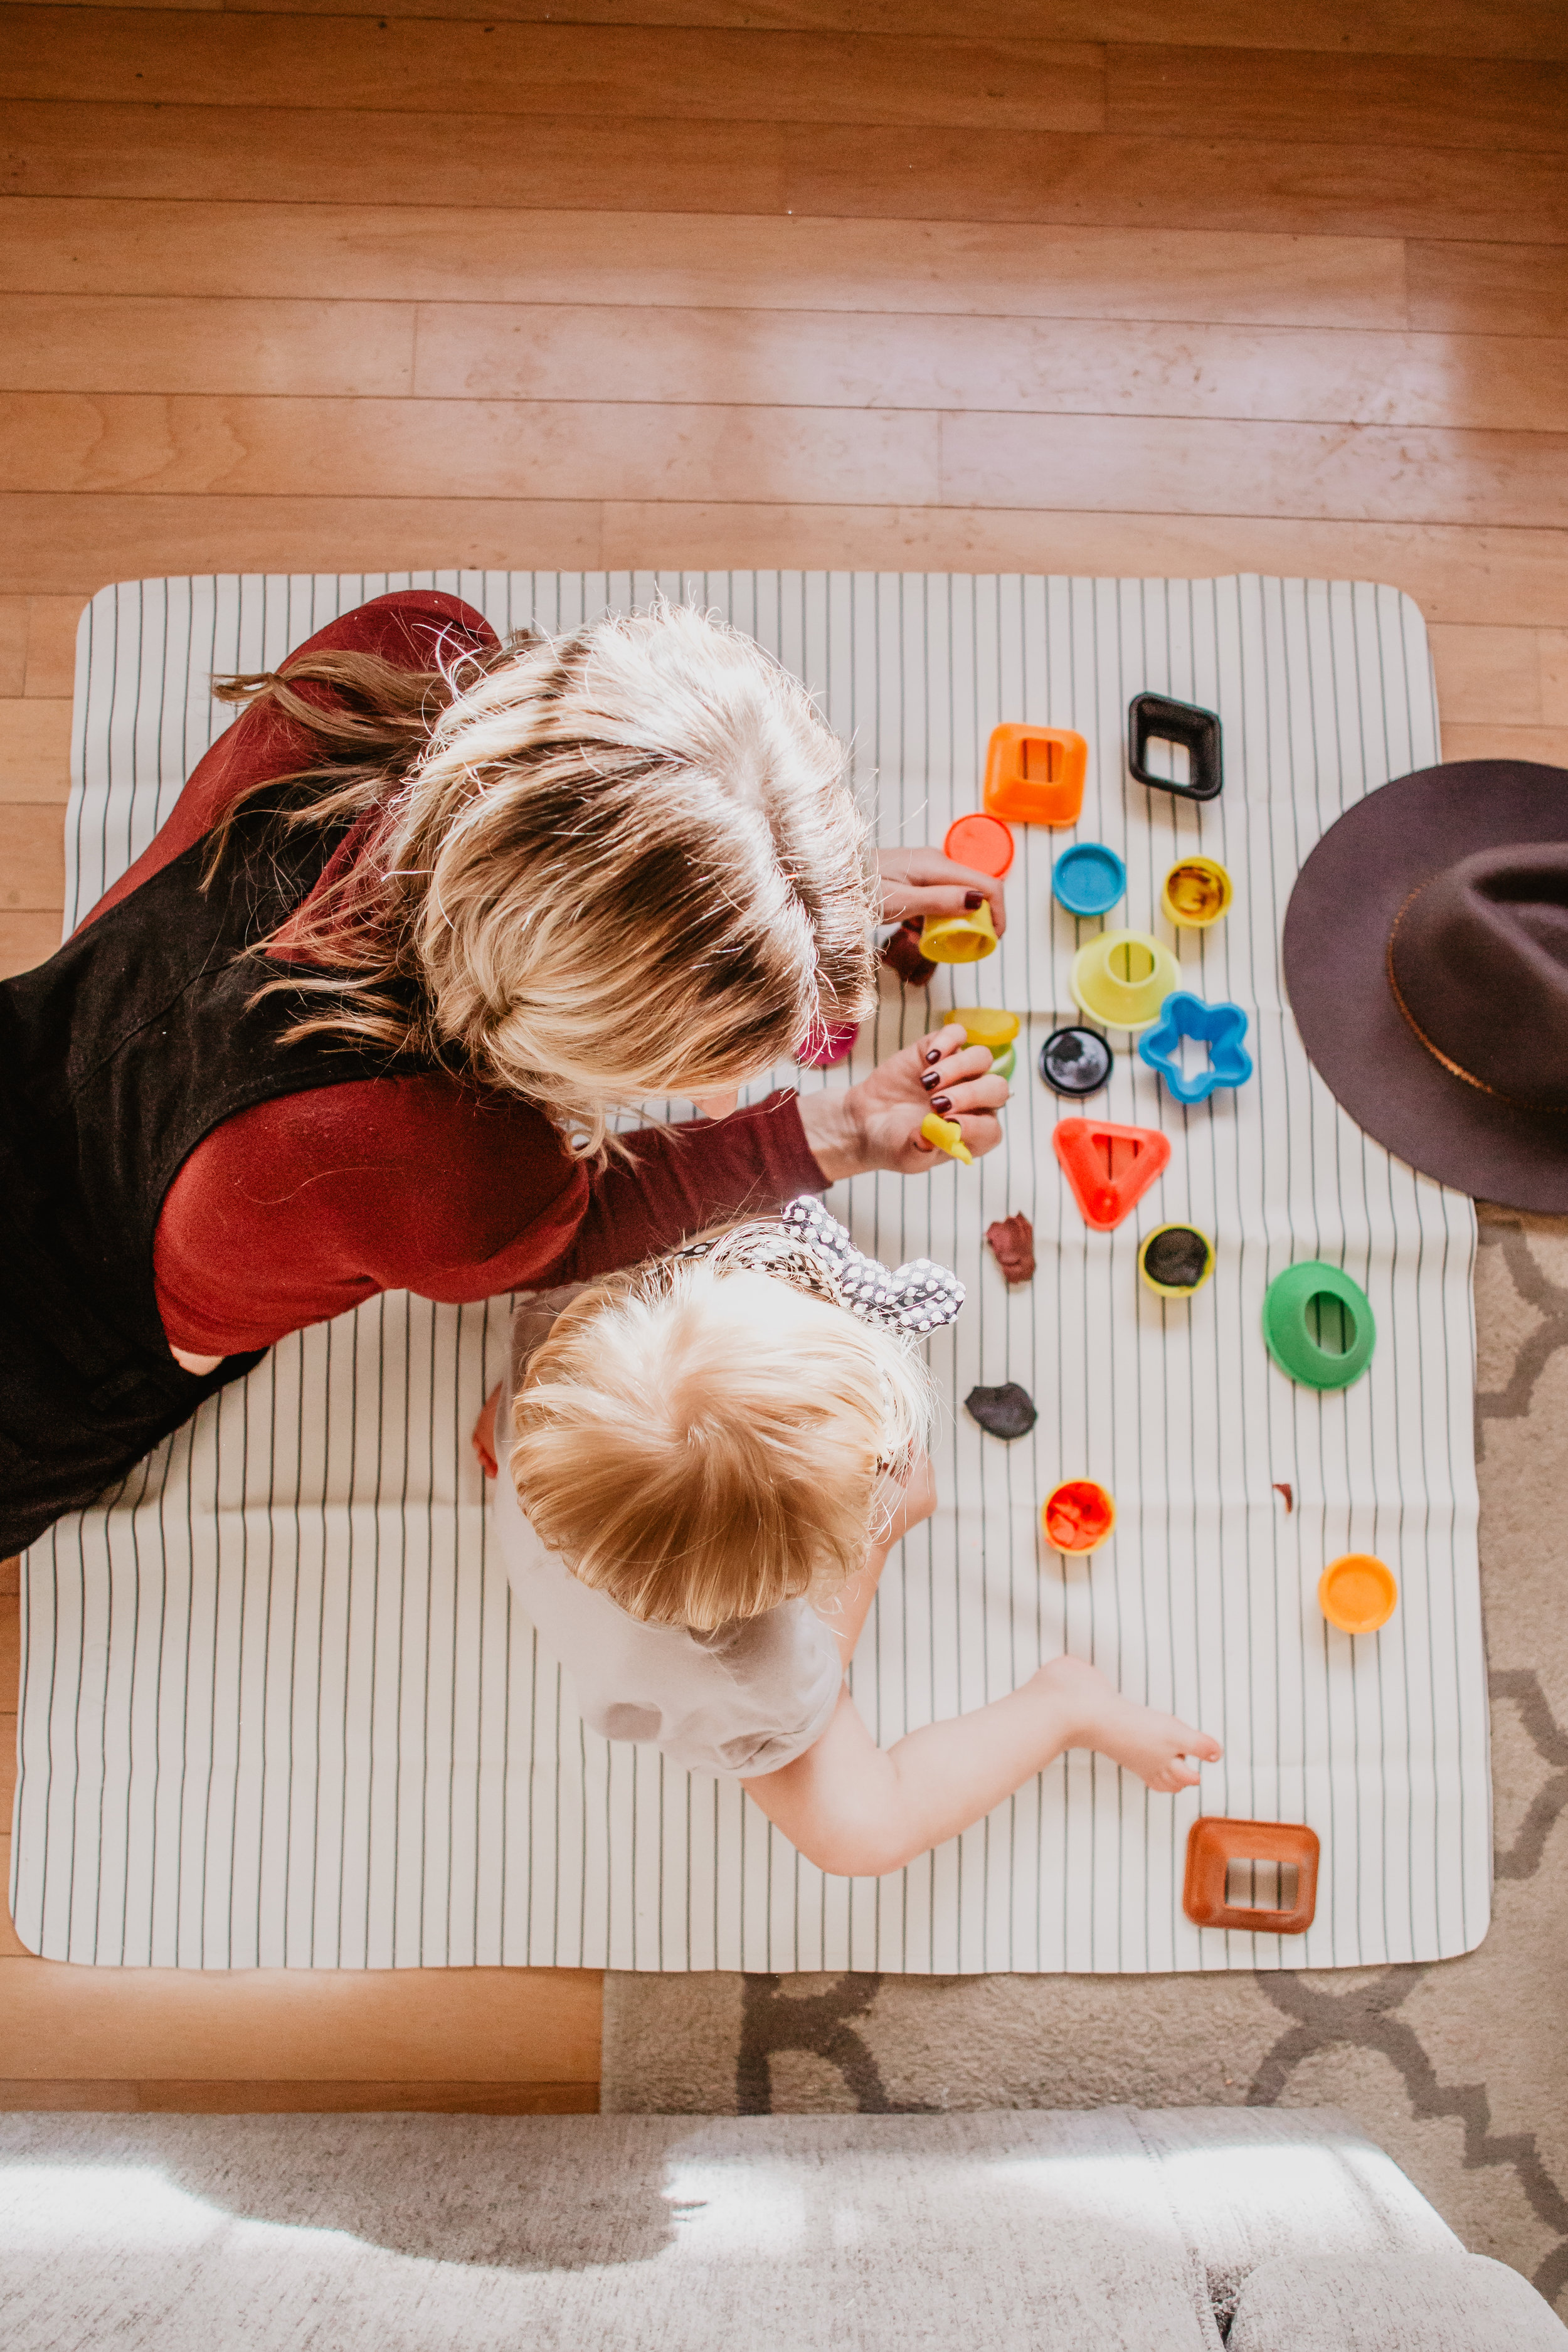 17 Indoor Rainy Day Activities for Kids -- Mommy Blogger - Vlogger - The Overwhelmed Mommy